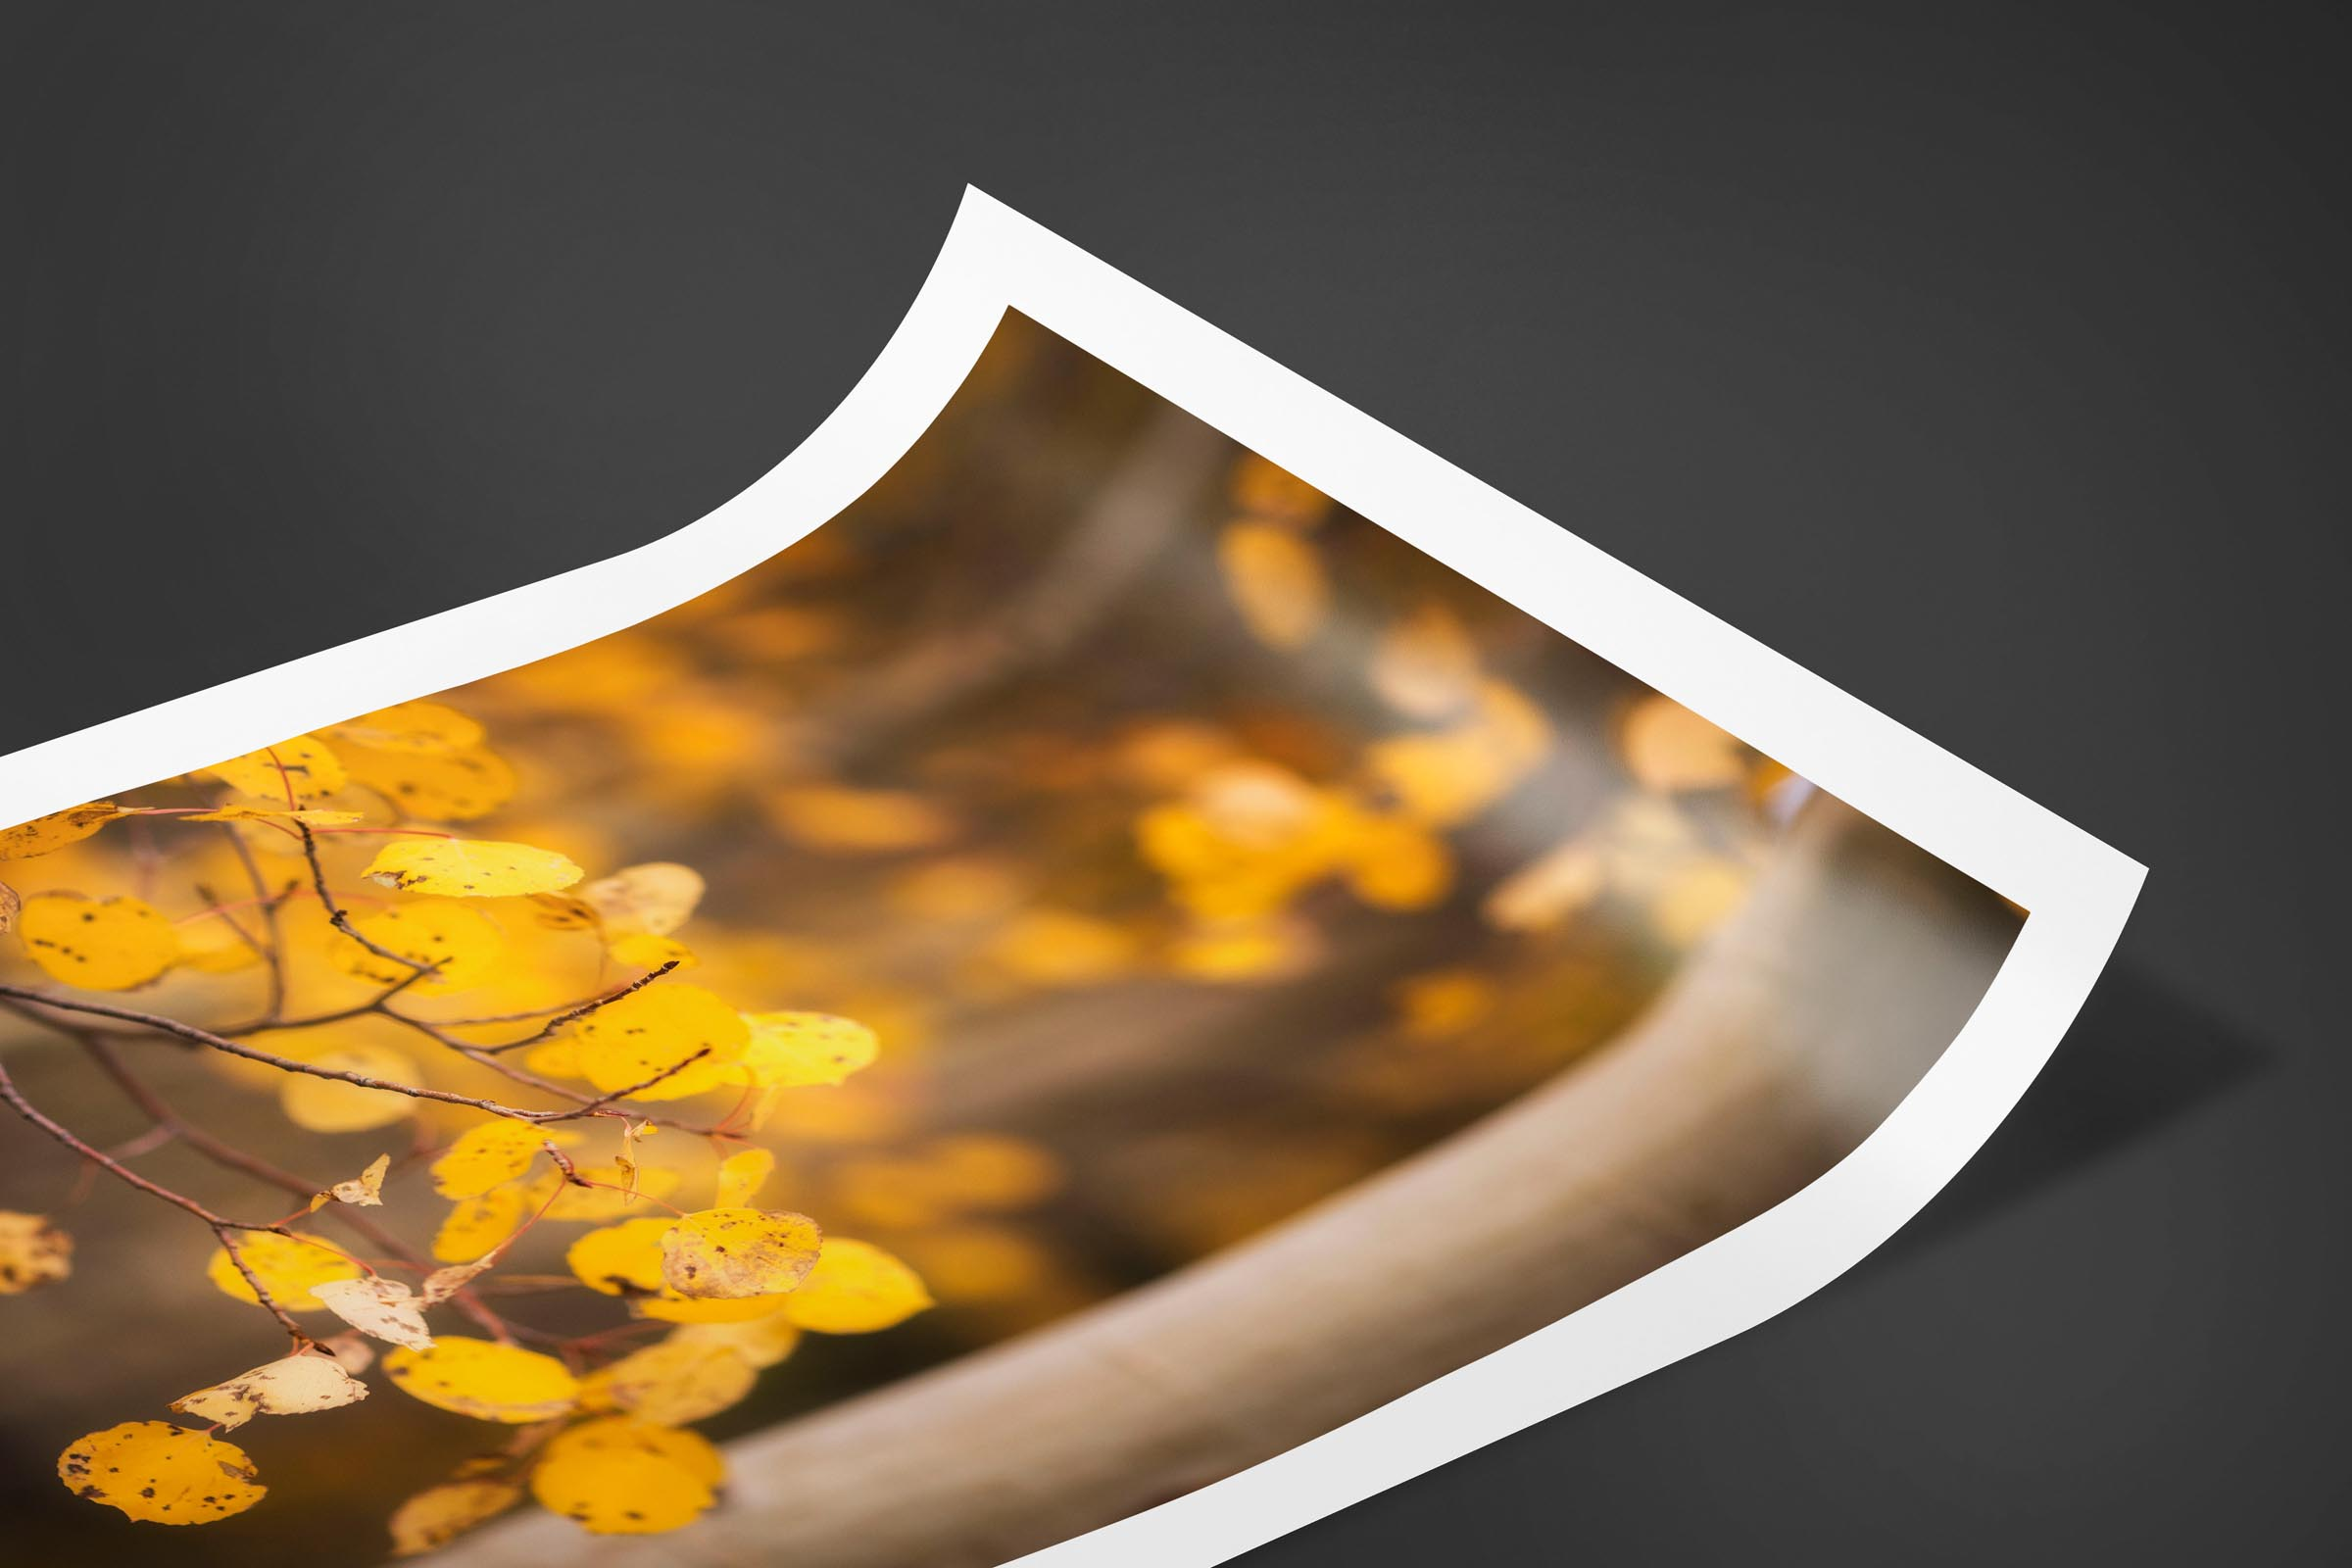 Fine art limited edition print of Aspen Leaves in Aspen, Colorado by Brent Goldman Photography